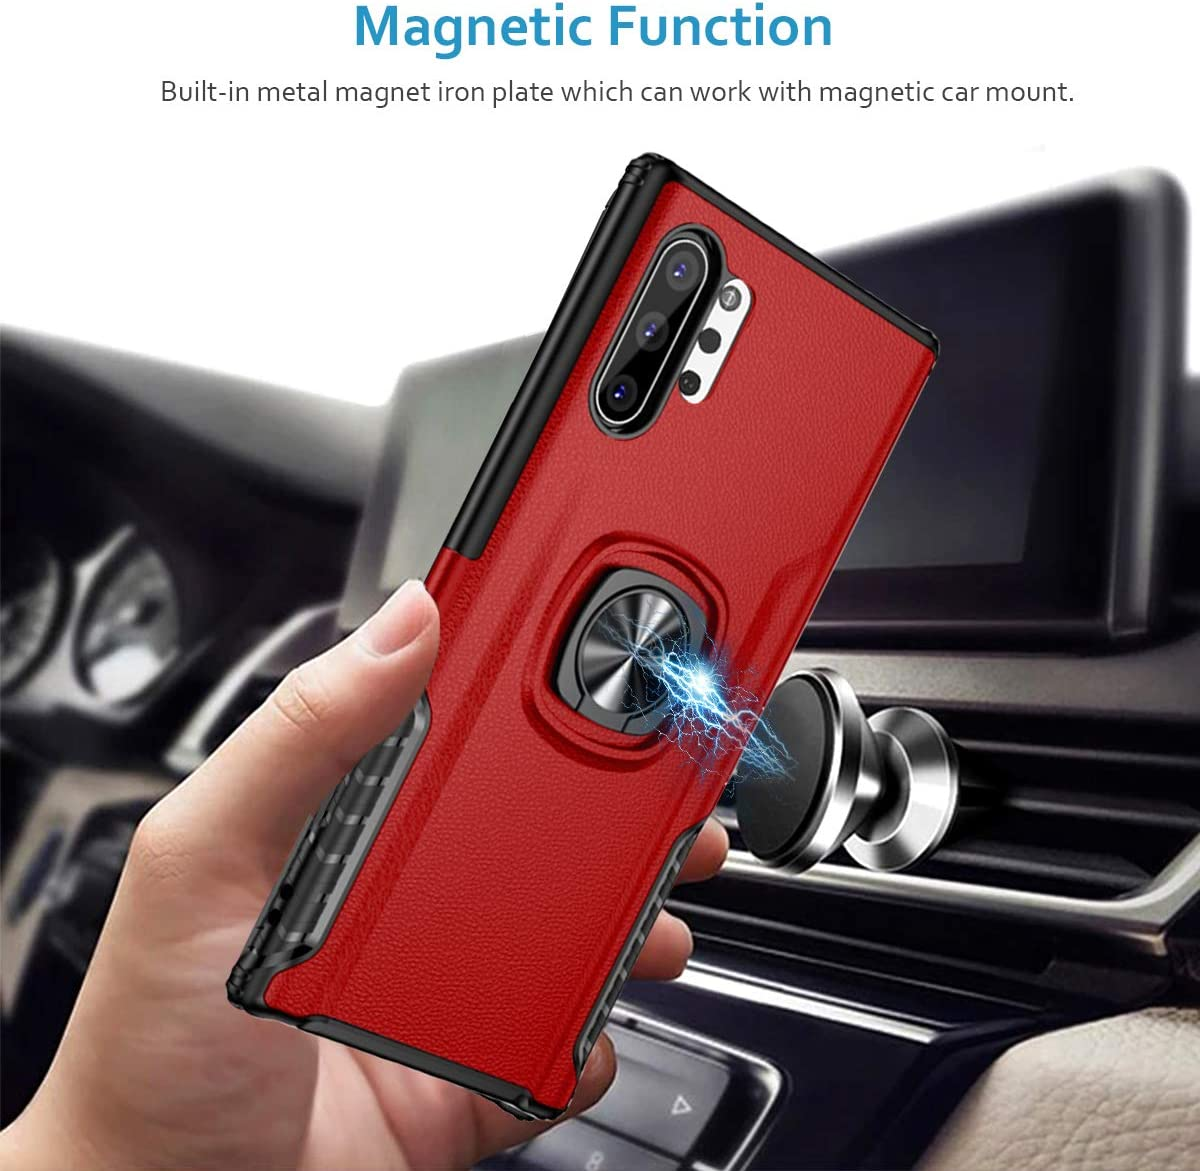 Stylish Dual Layer Hard PC Back Case with 360 Degree Rotation Finger Ring Grip Kickstand Magnetic Car Mount for Galaxy Note 10 WATACHE Galaxy Note 10 Plus//Pro//5G Case Plus,Red